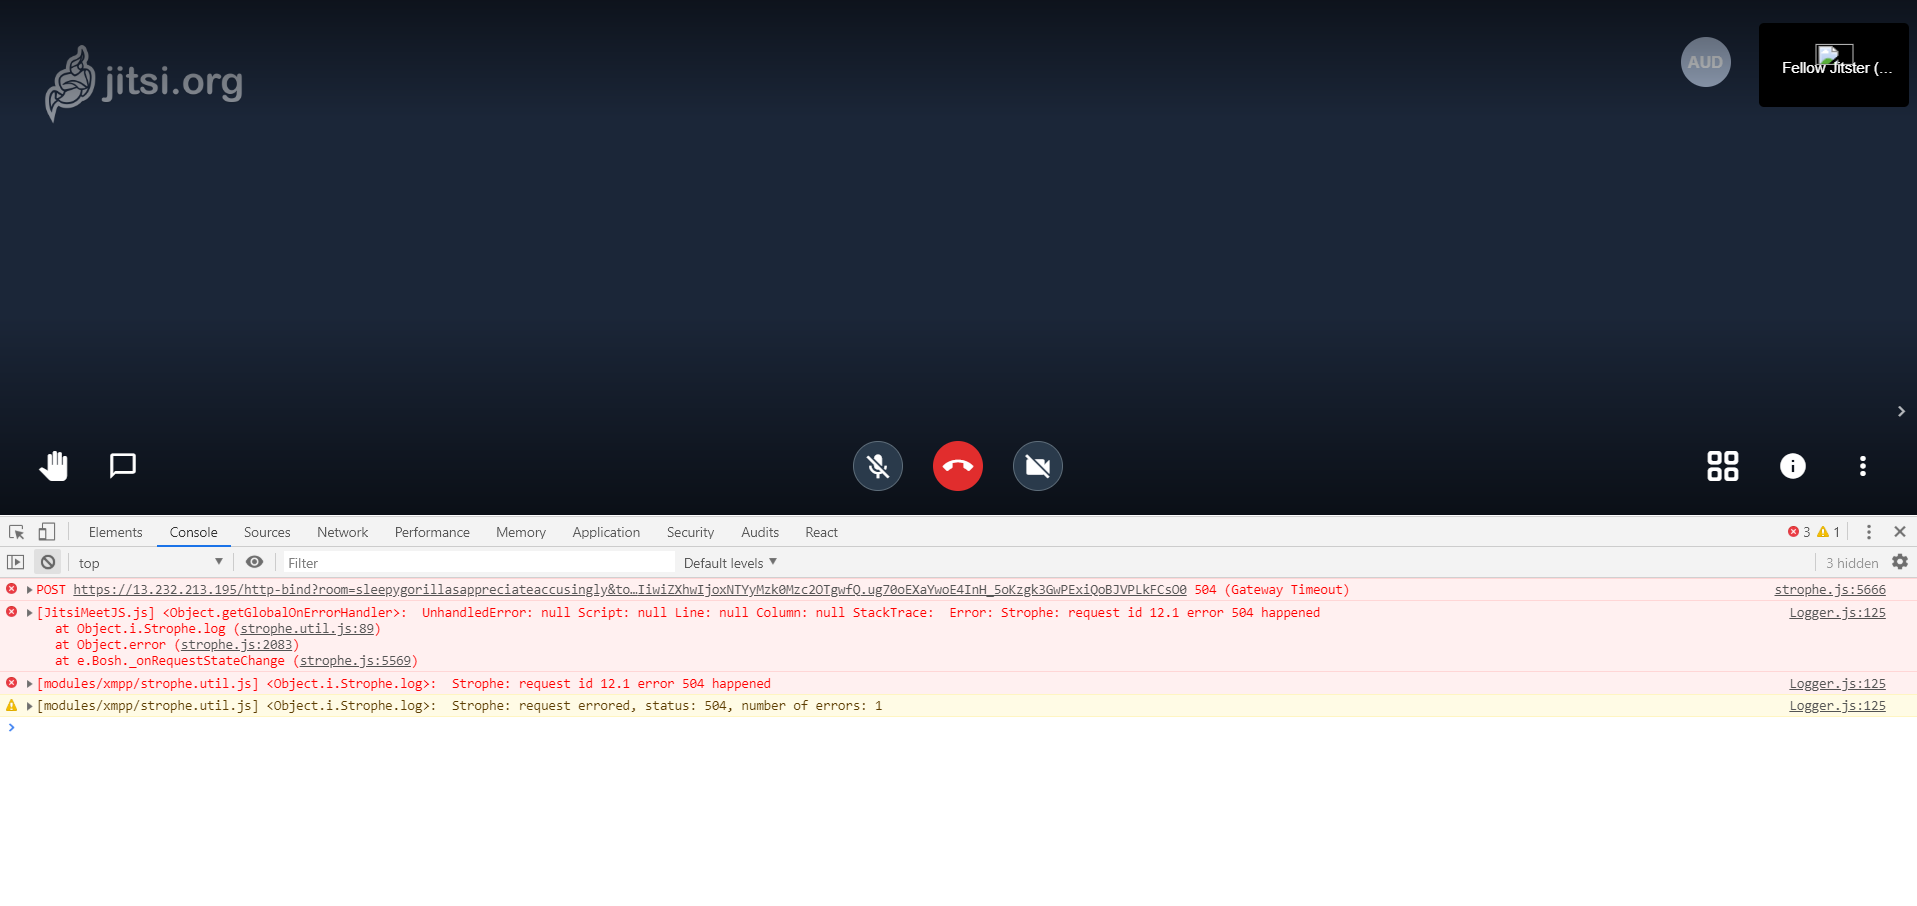 jitsi video is not working when auth mode is token · Issue